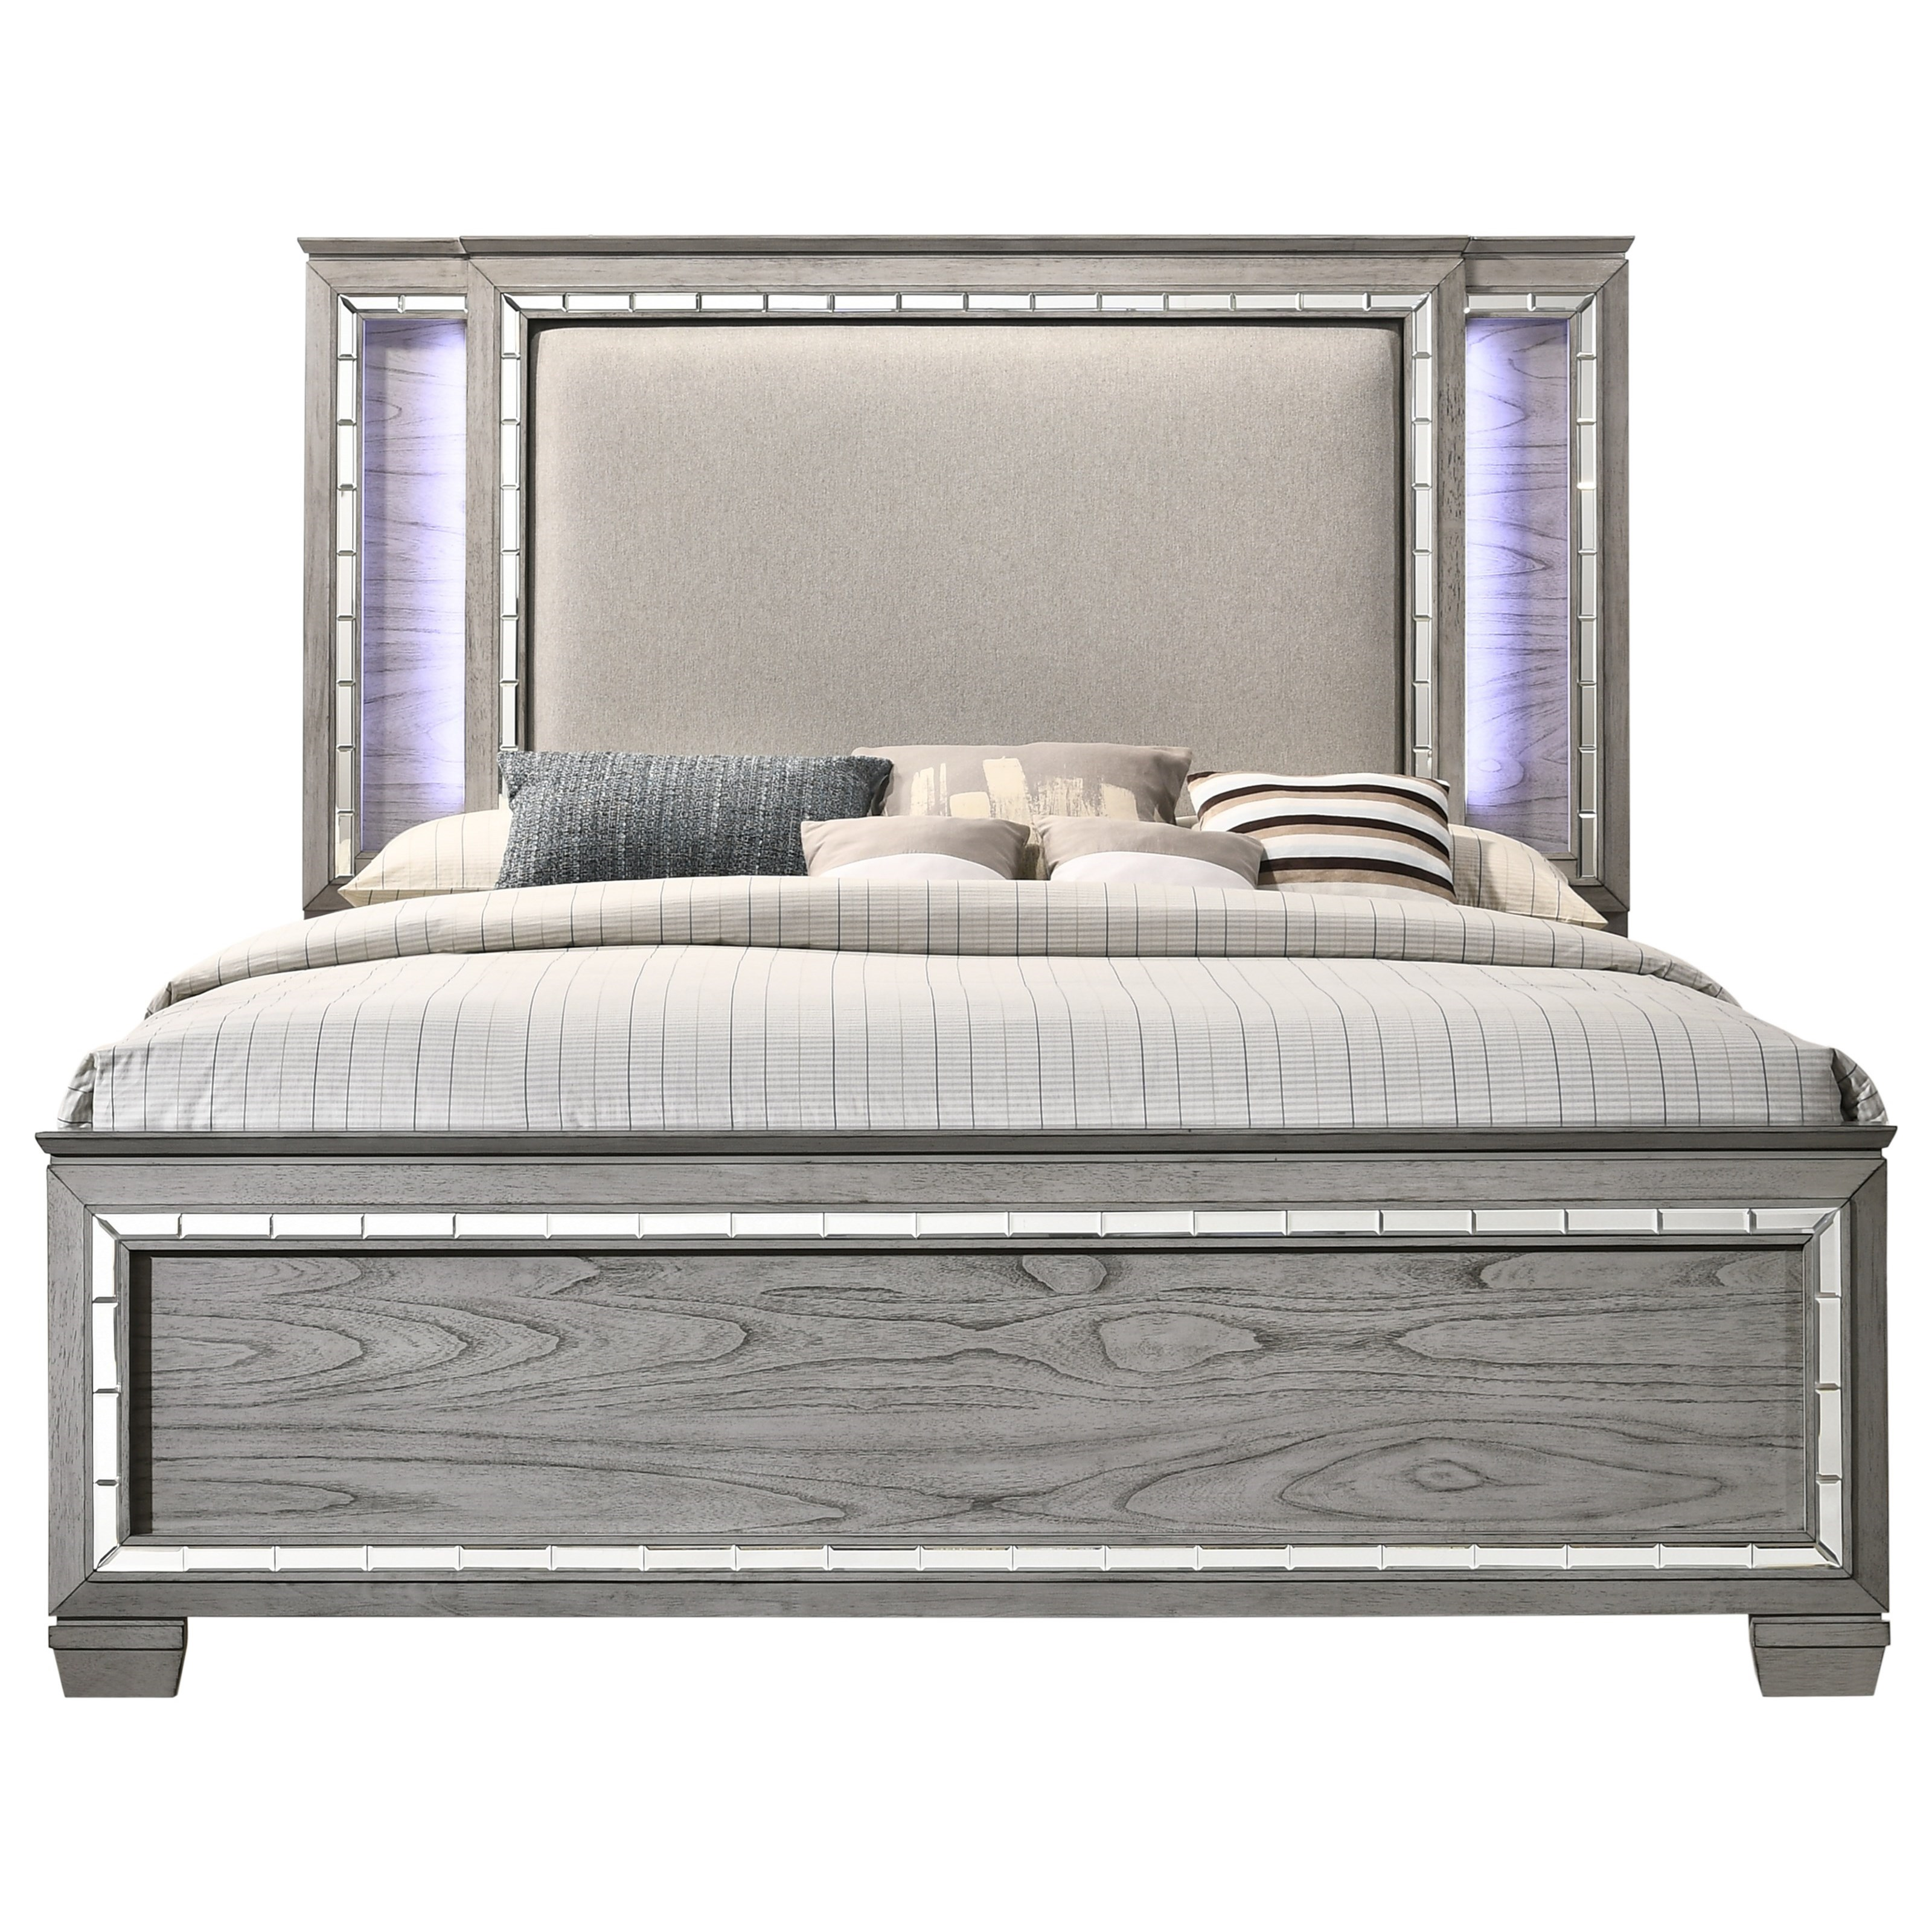 King Bed (LED HB)